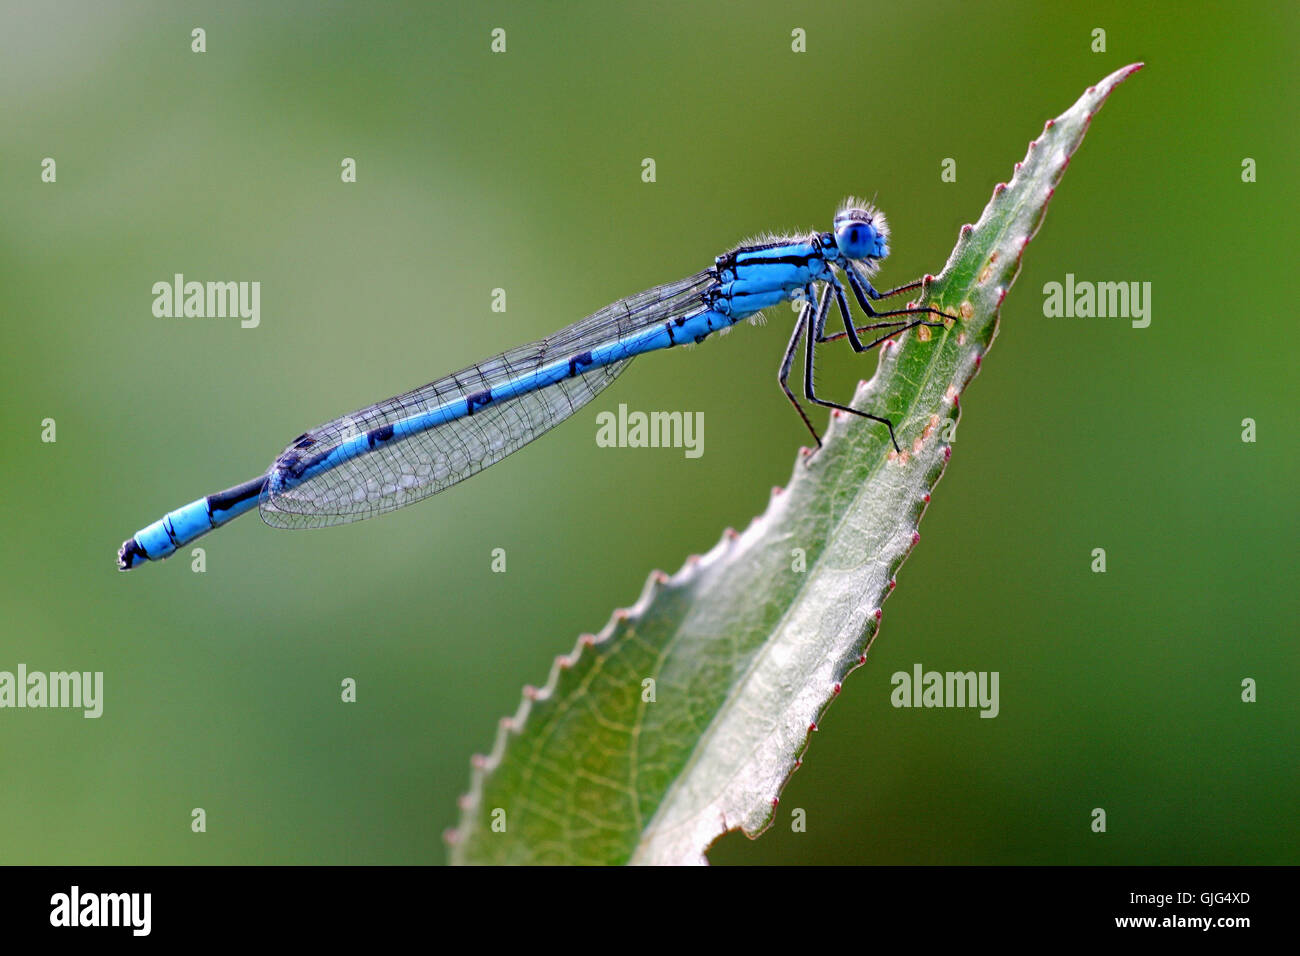 dragonfly dragonflies hufeisenazurjungfer - Stock Image